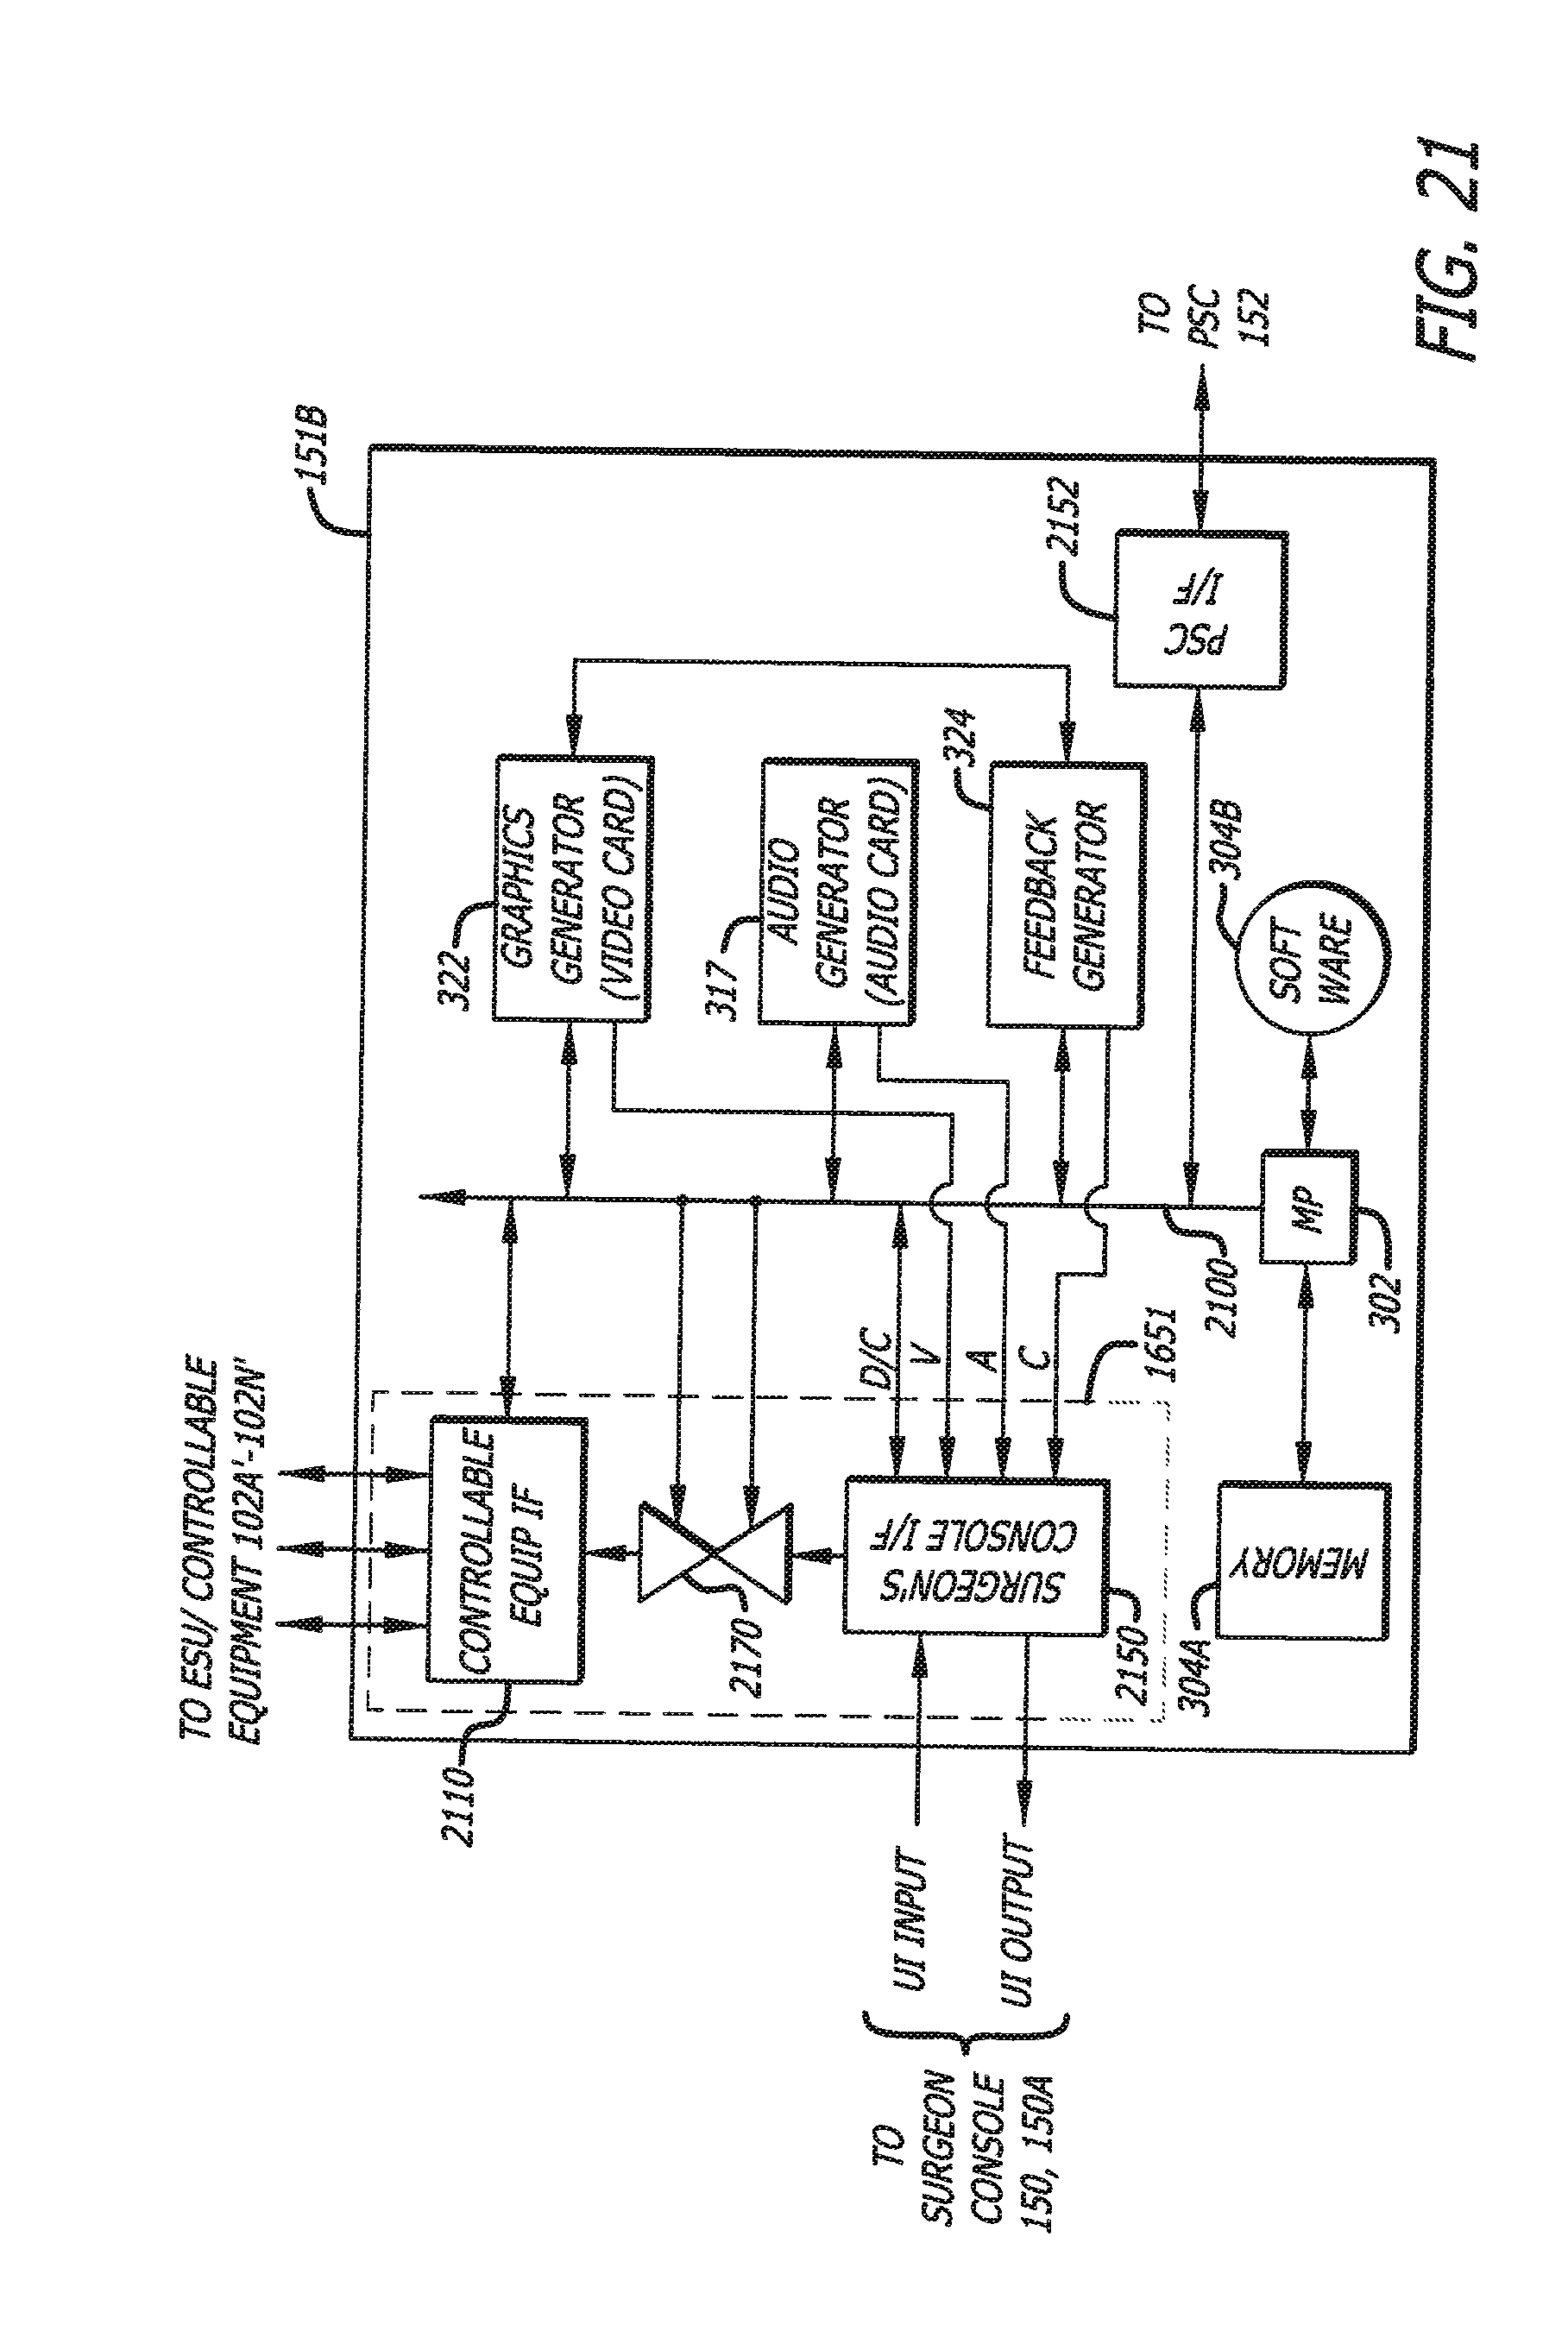 yamaha dt 125 wiring diagram yamaha image wiring yamaha dt 125 r wiring diagram wiring diagram and schematic on yamaha dt 125 wiring diagram